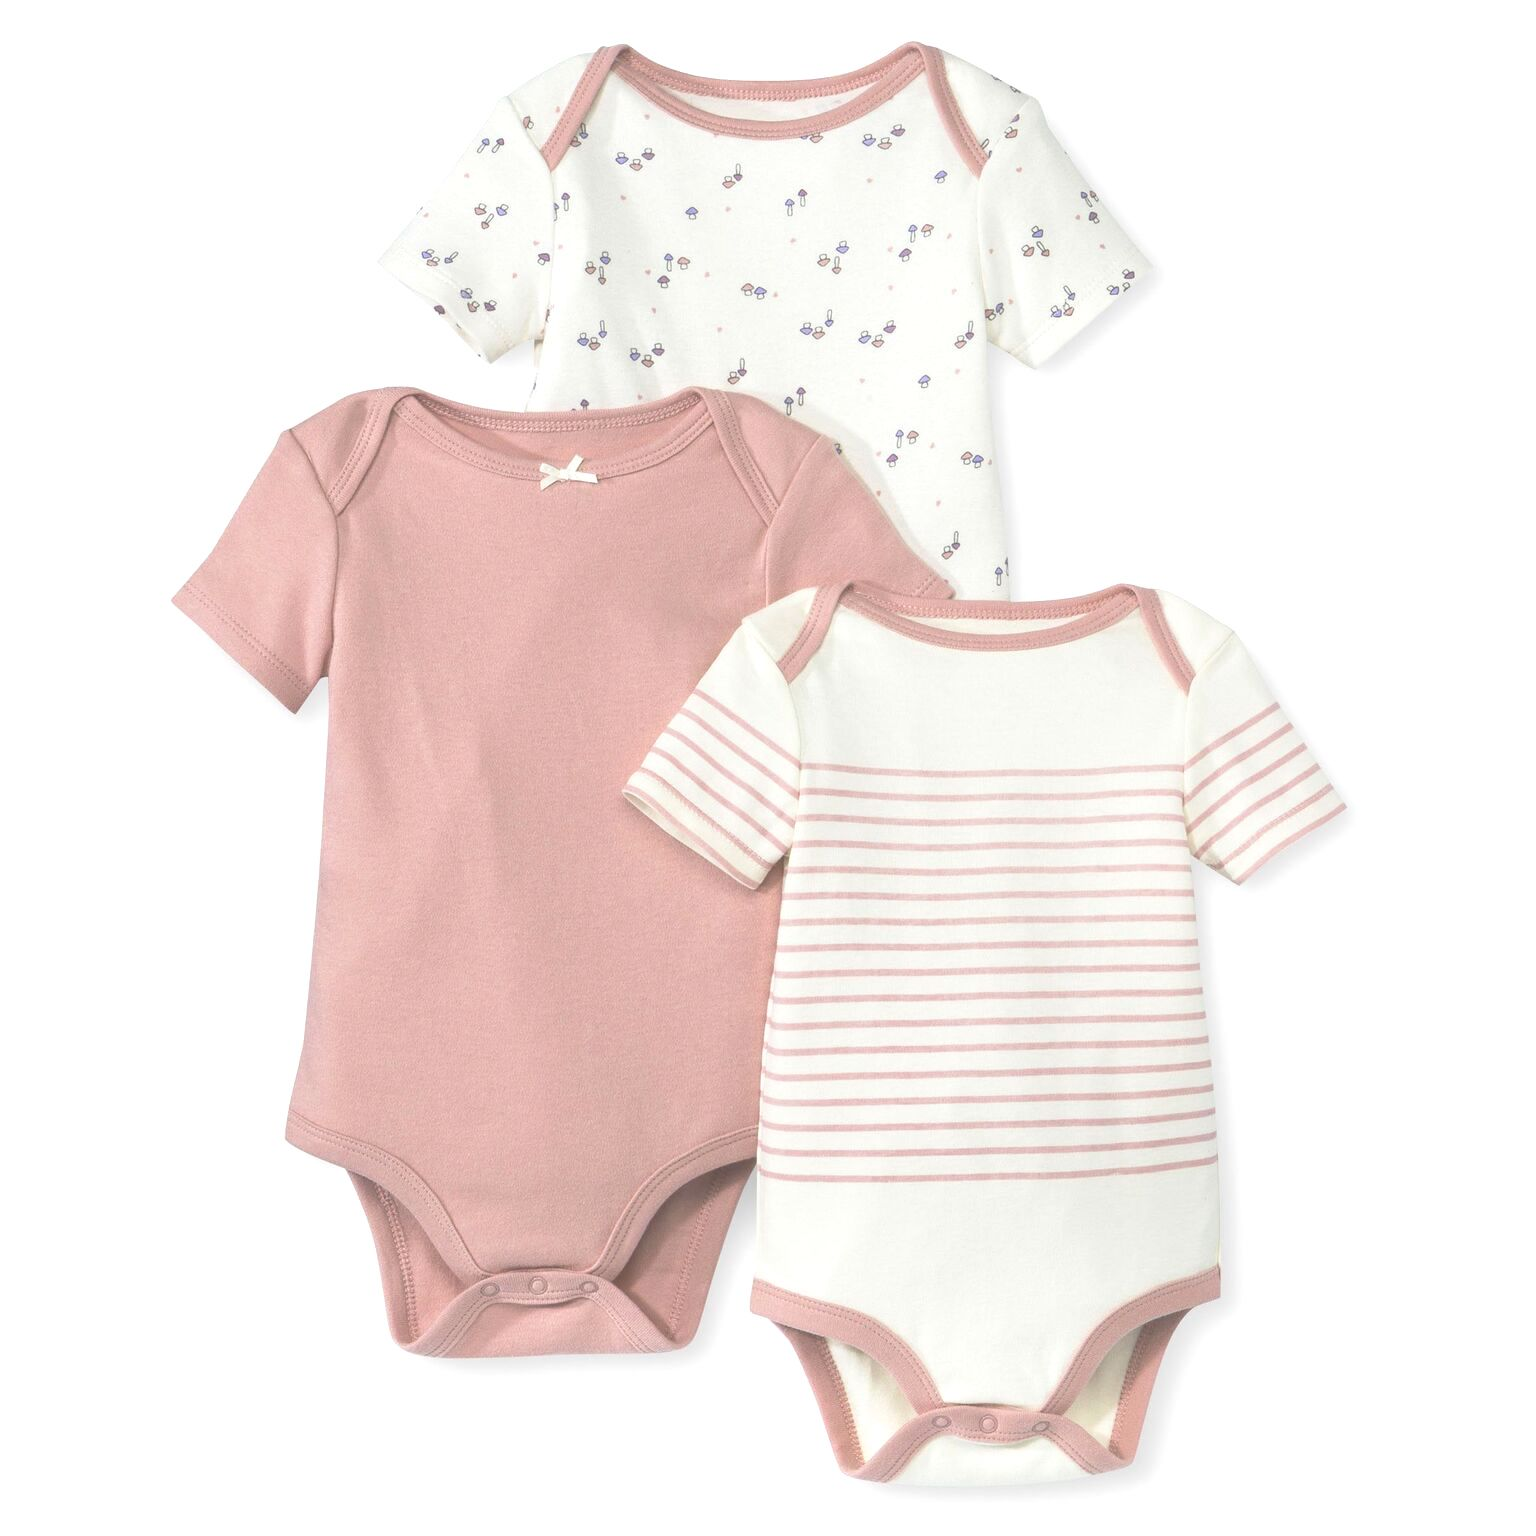 CHEROKEE NEWBORN GIRLS LAYETTE